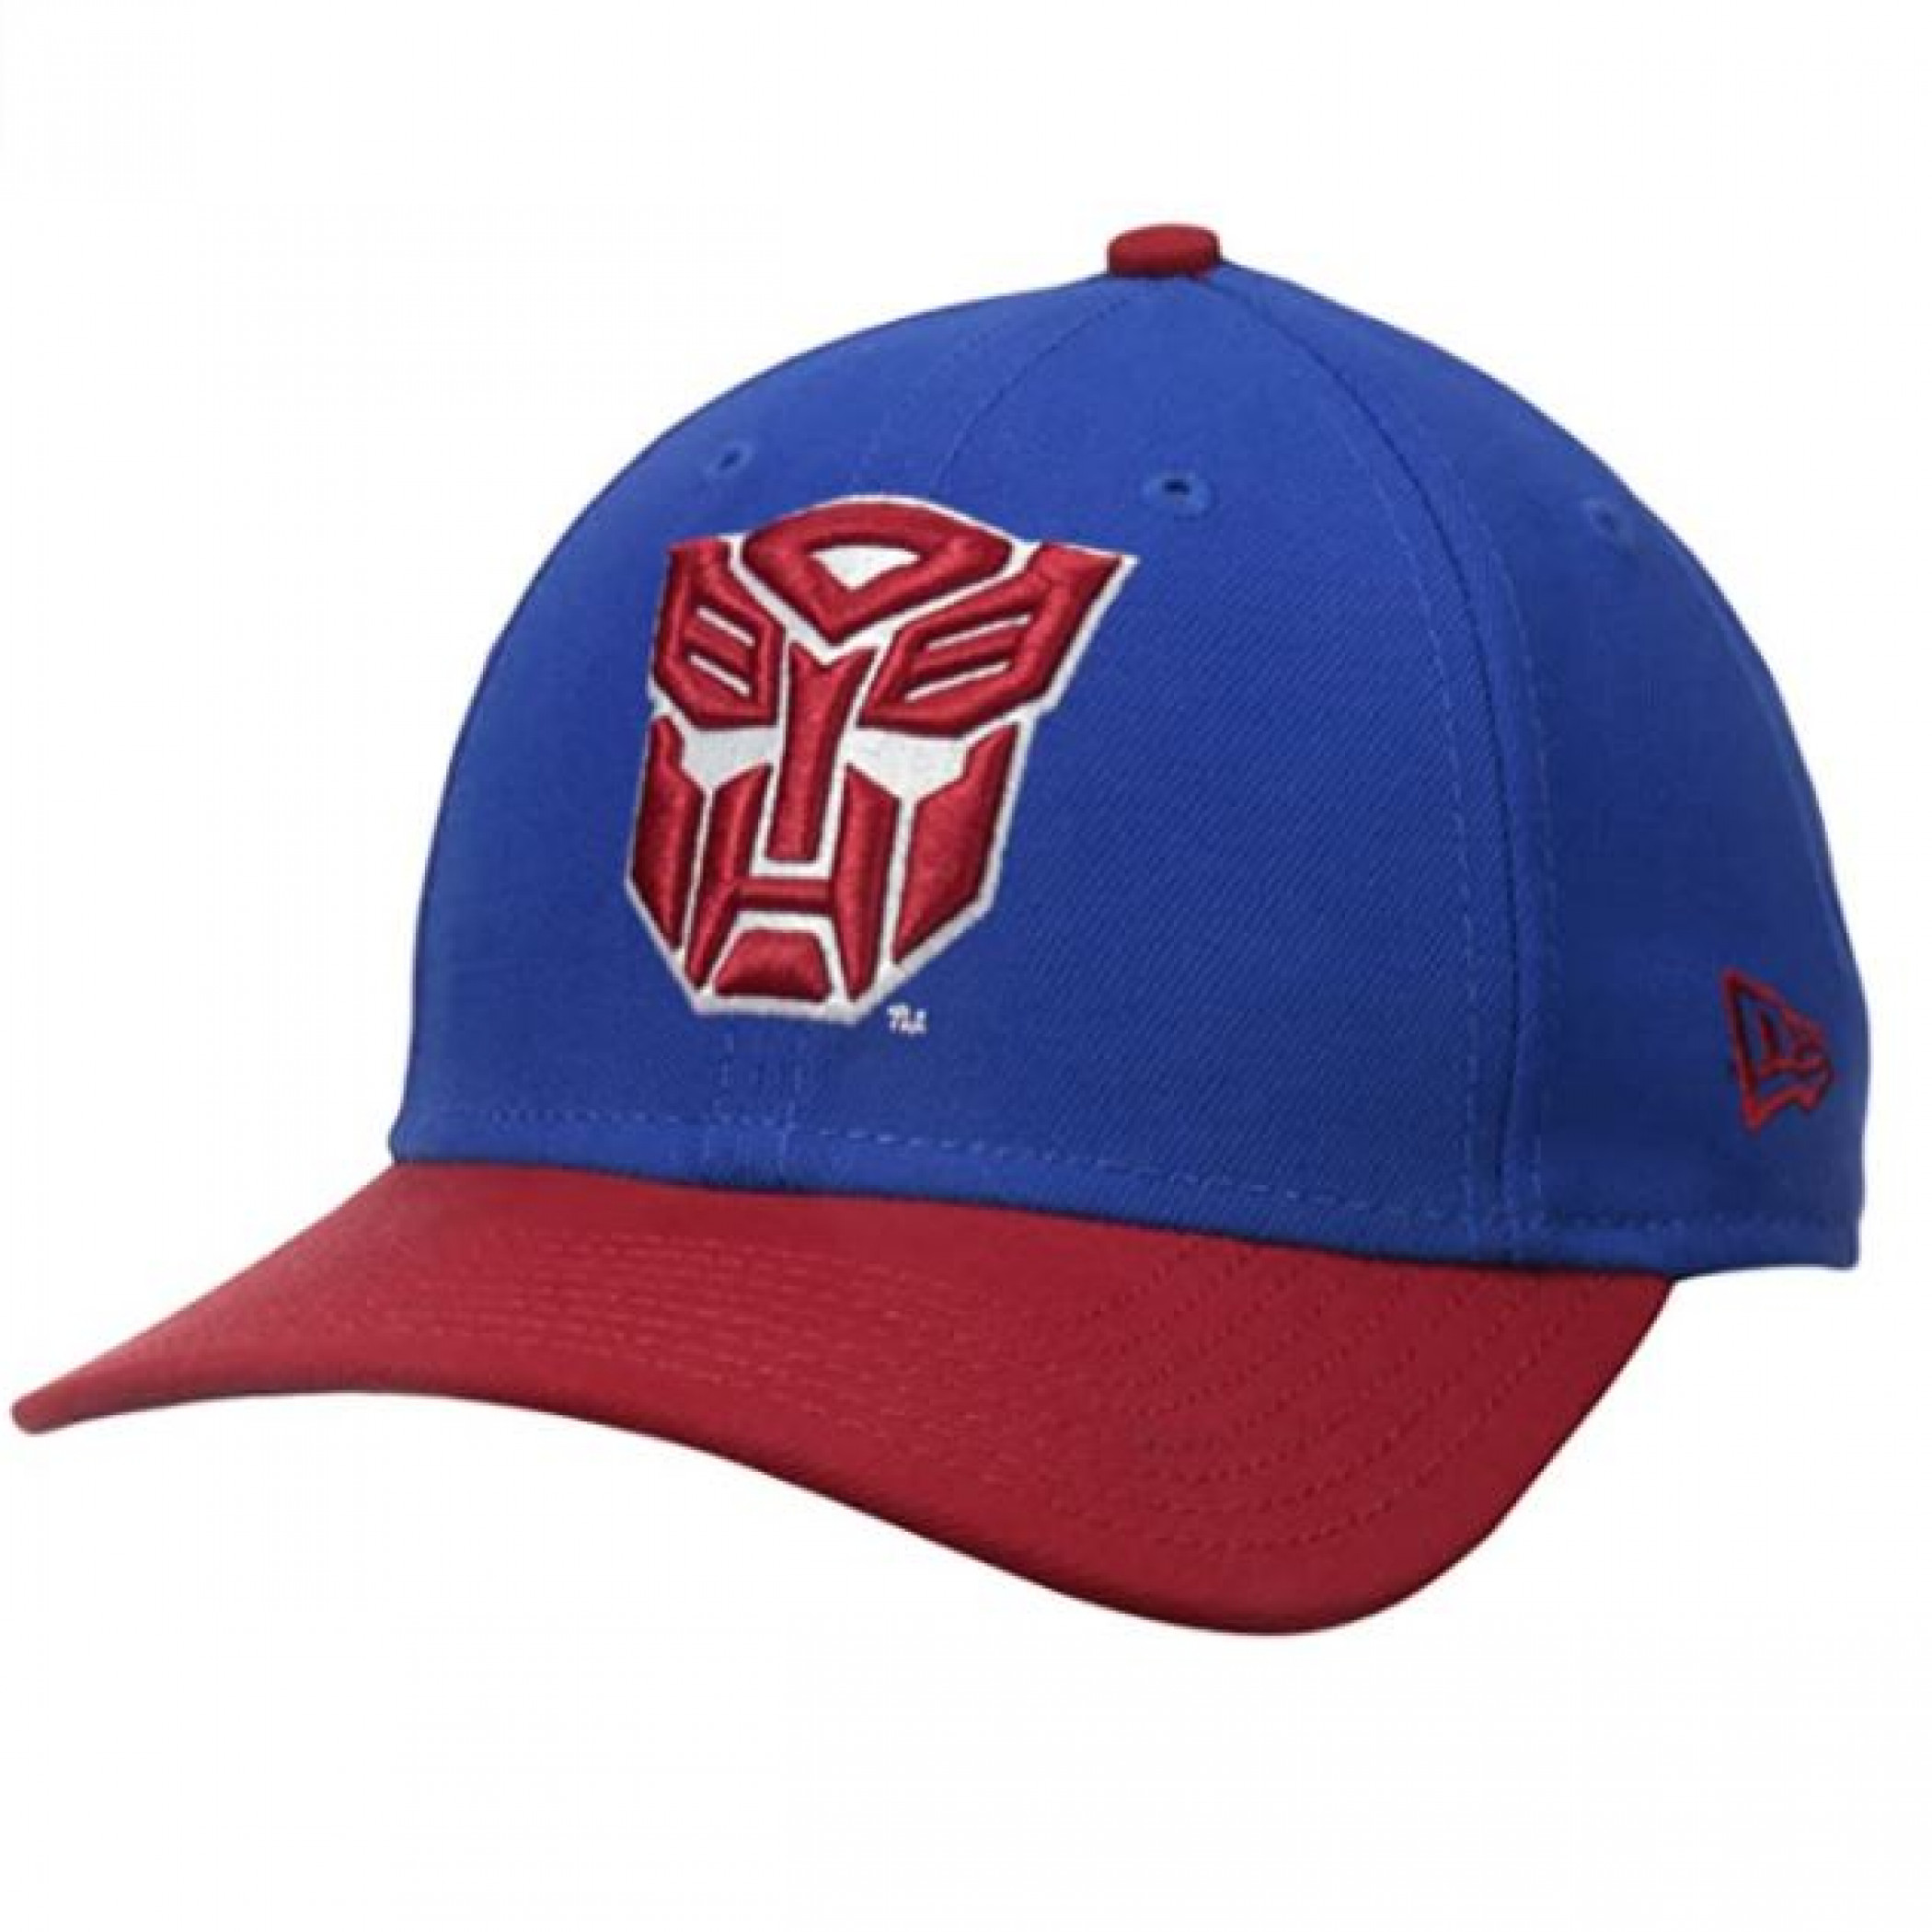 Transformers Autobots Logo New Era 9Twenty Adjustable Hat